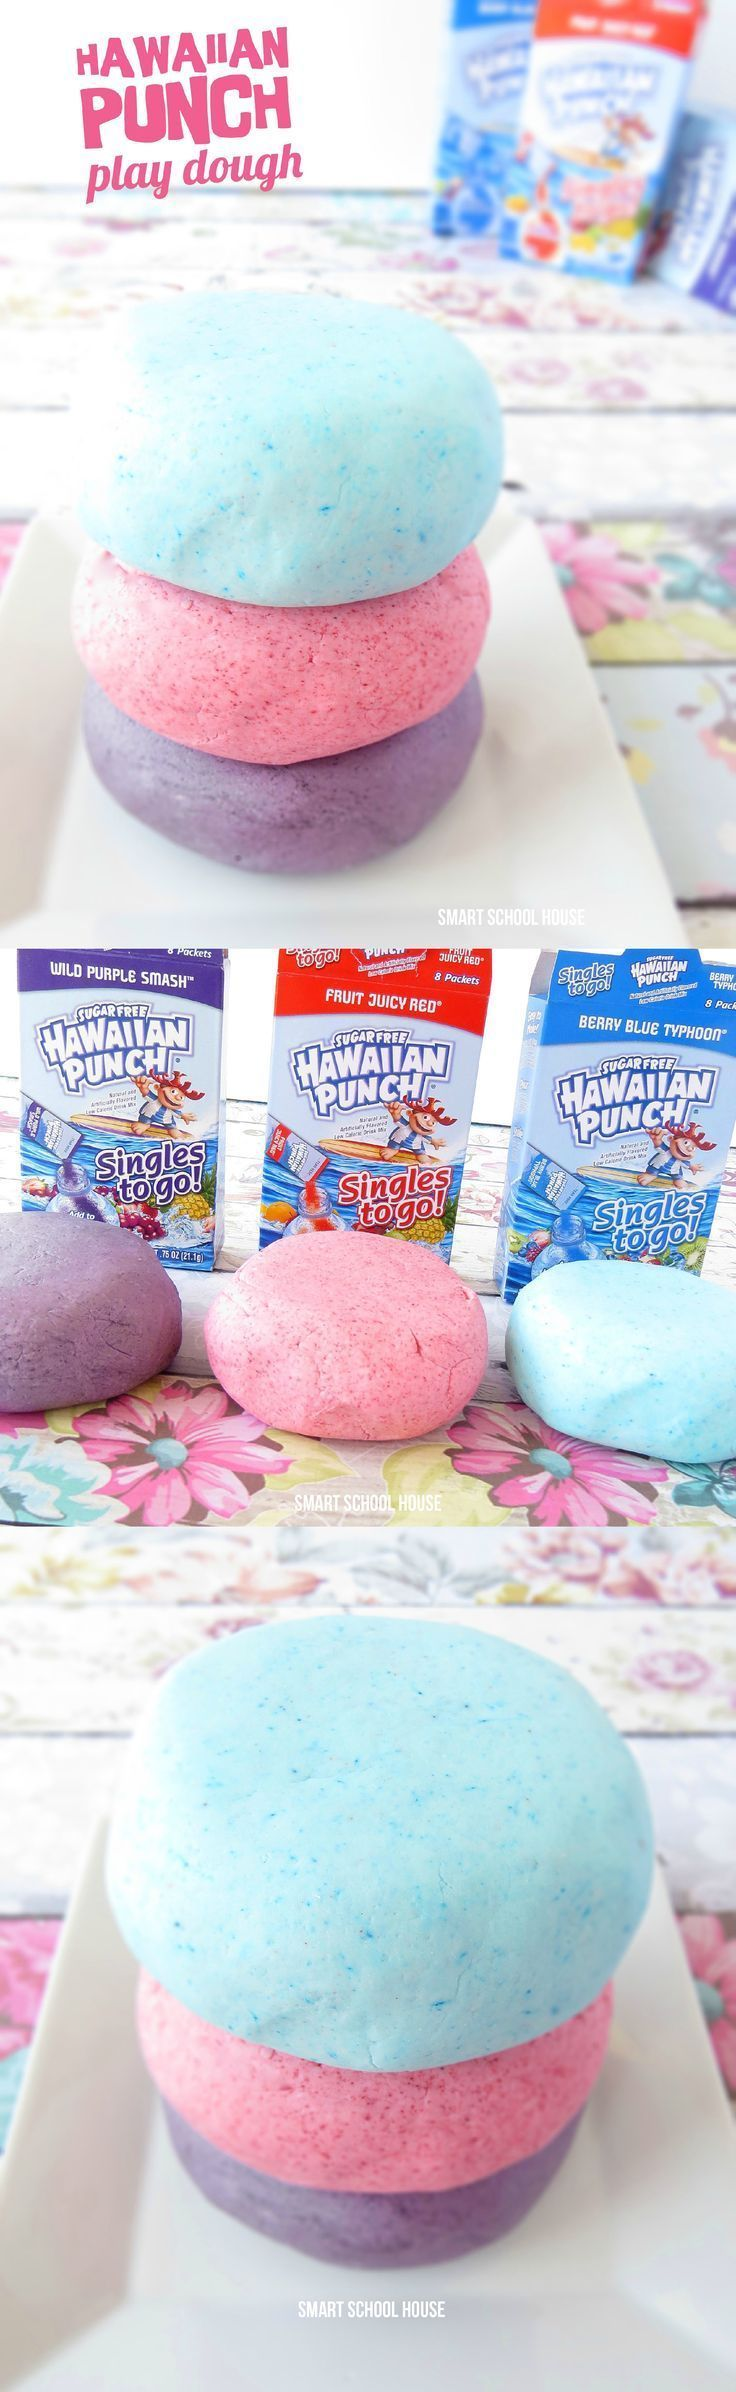 Hawaiian Punch Powder Drink Packets In Desired Colors Flavors White Pre Made Frosting Powdered Sugar Food Coloring Optional